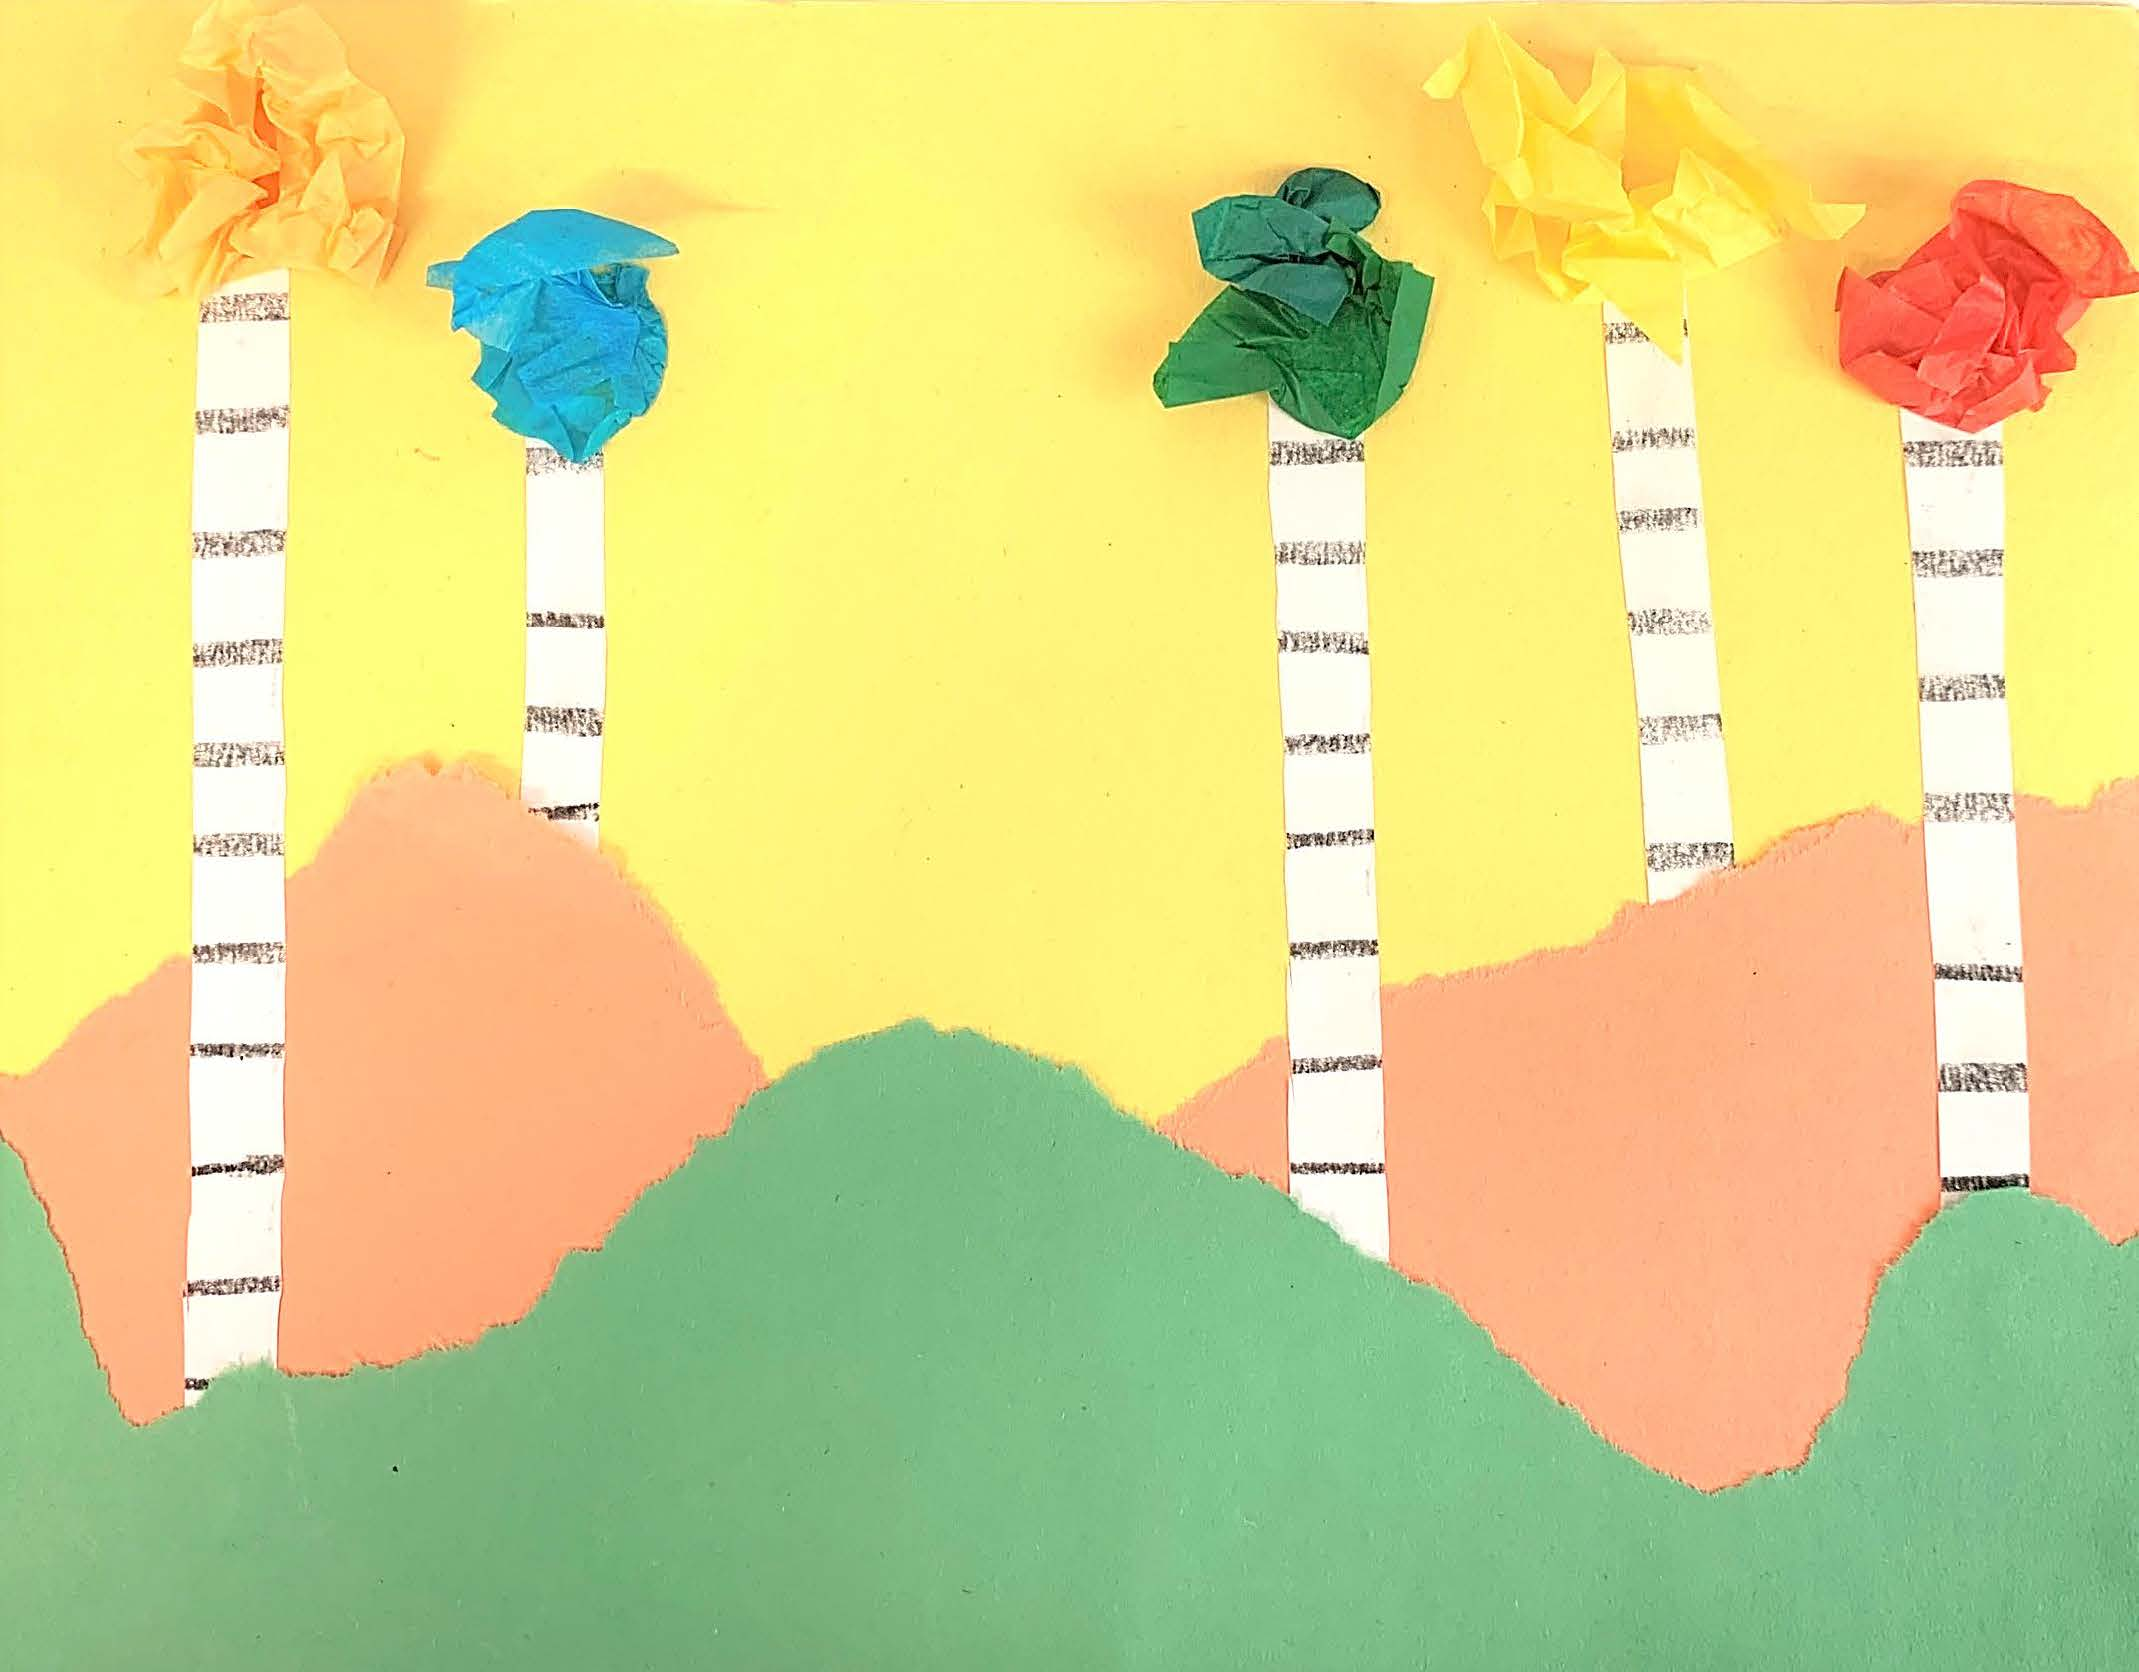 An example of the torn-paper landscape art that will be created in this Tiny Thursdays lesson.